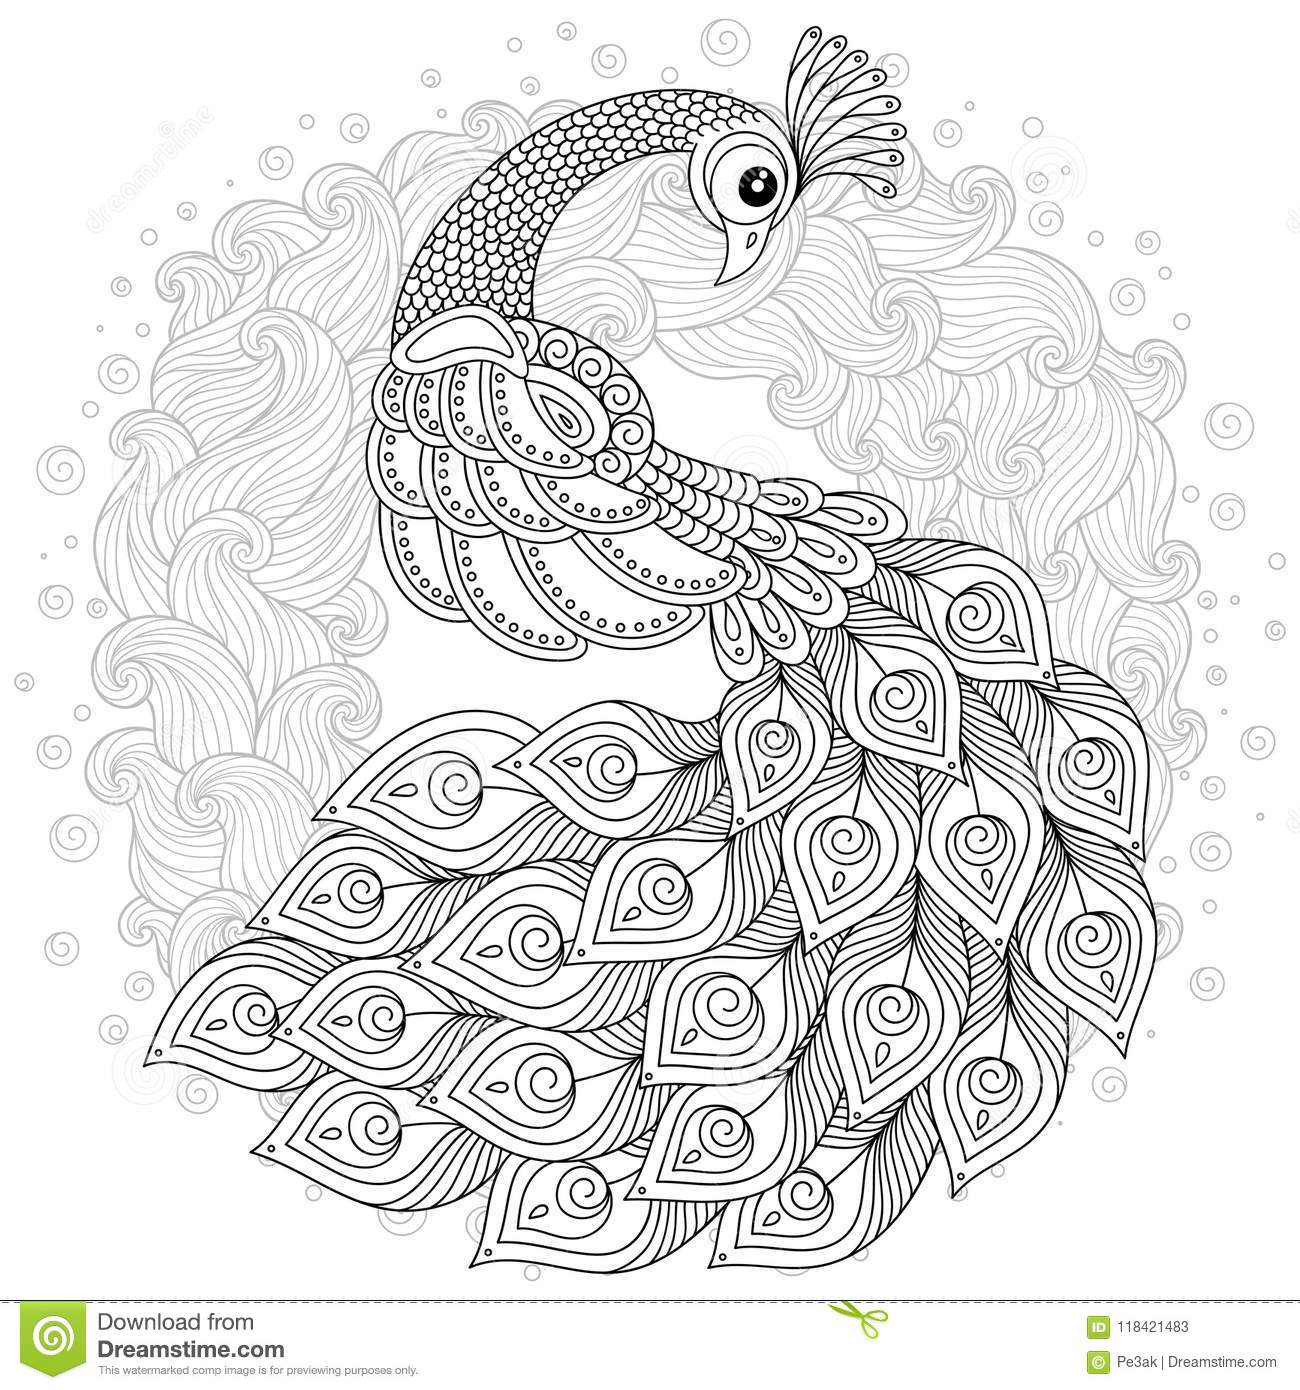 Download Peacock In Zentangle Style Adult Antistress Coloring Page Stock Vector